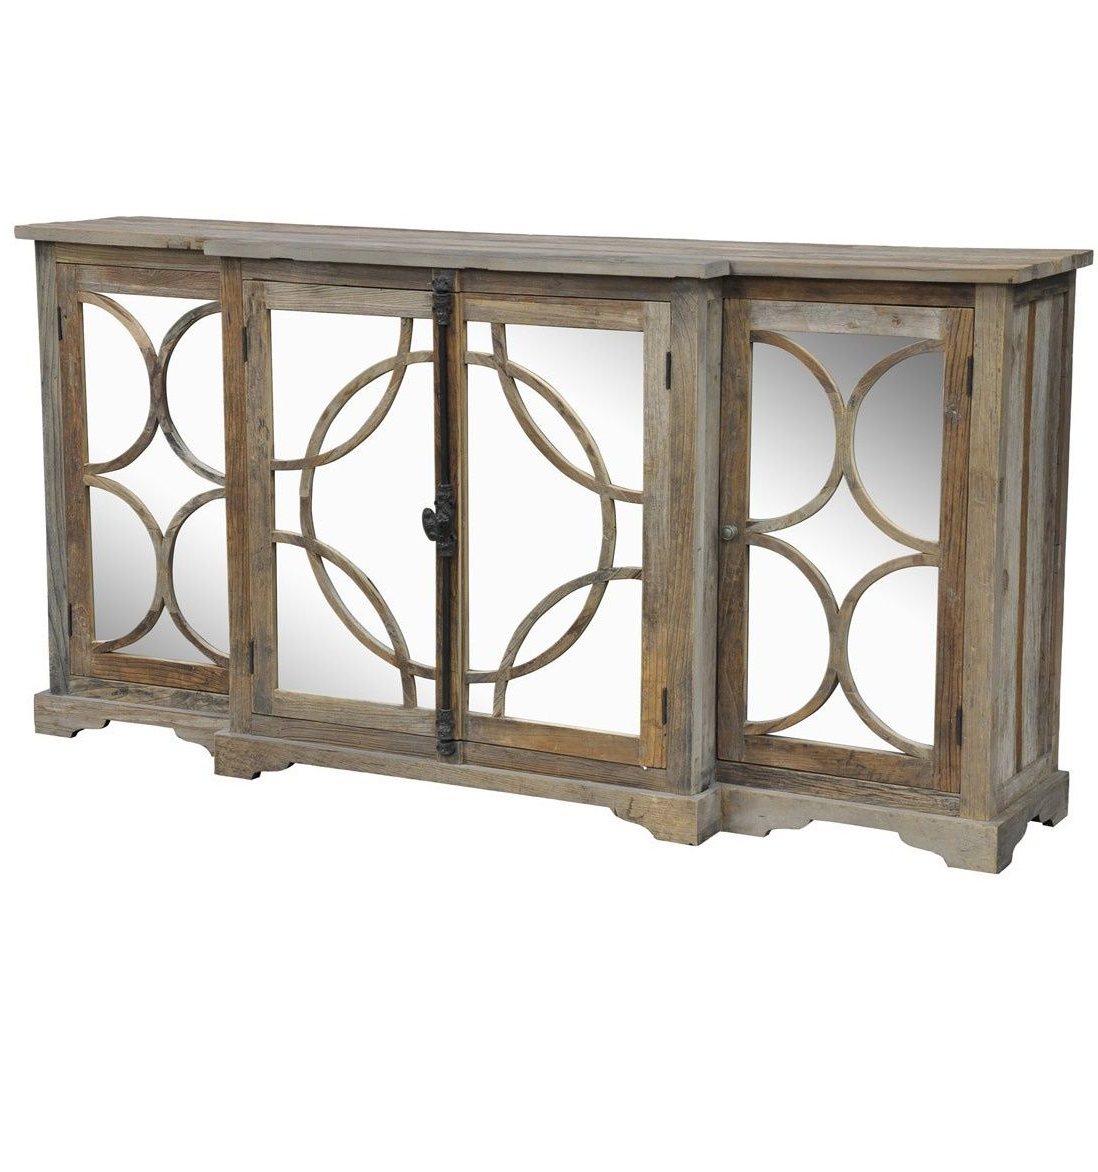 Wood And Mirrored Sideboard (View 20 of 20)